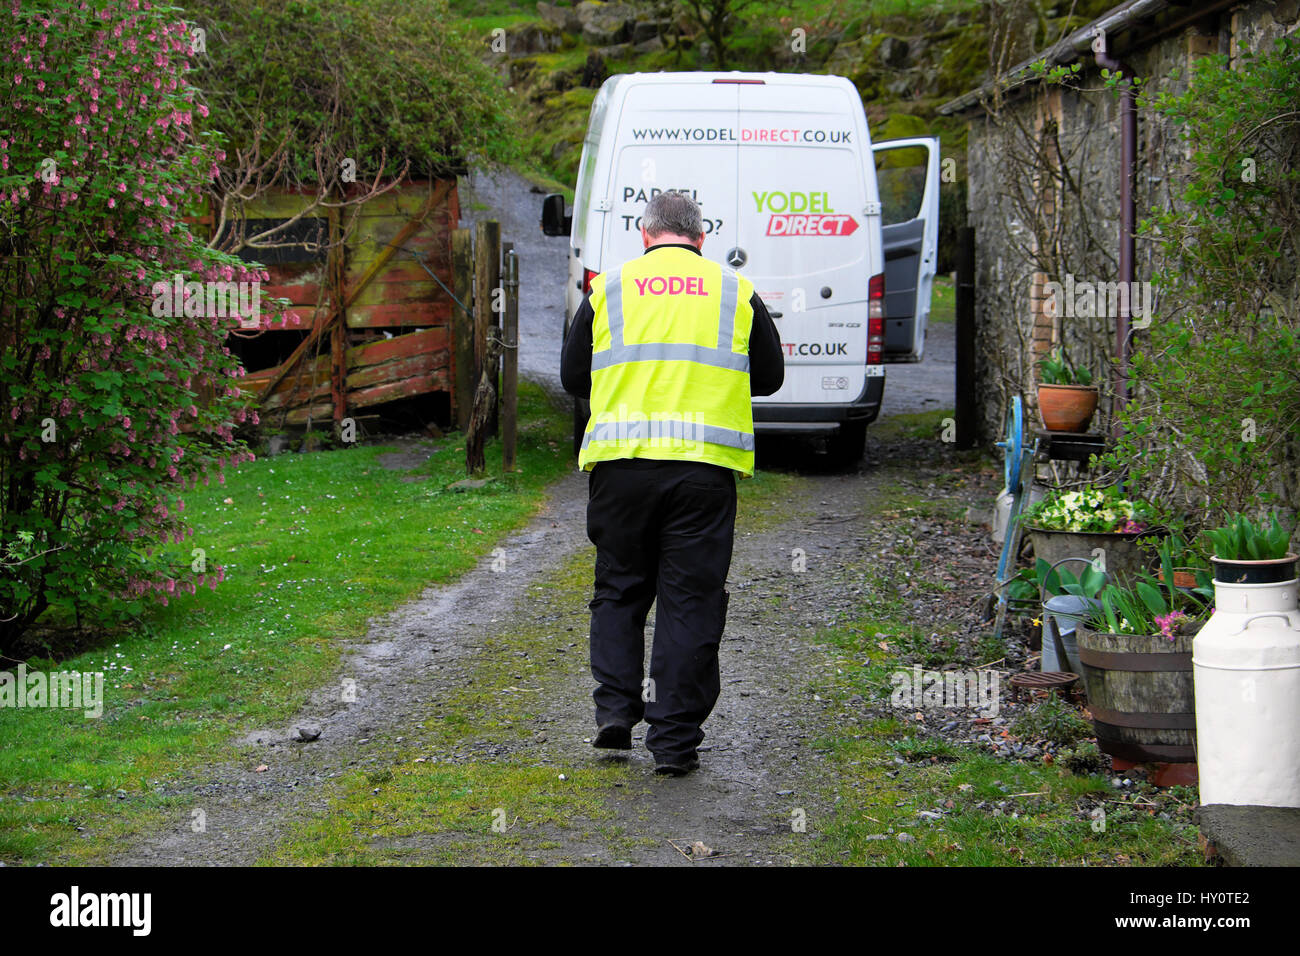 Parcel Delivery Van High Resolution Stock Photography And Images Alamy